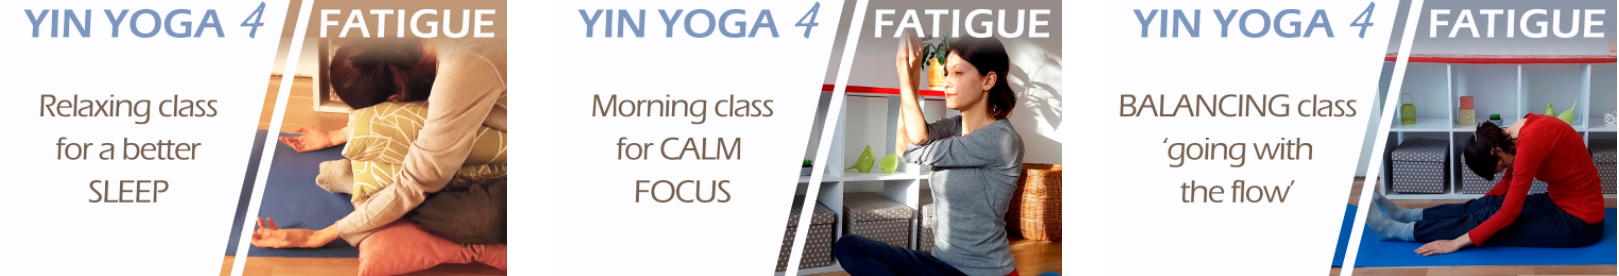 Yin Yoga for Fatigue